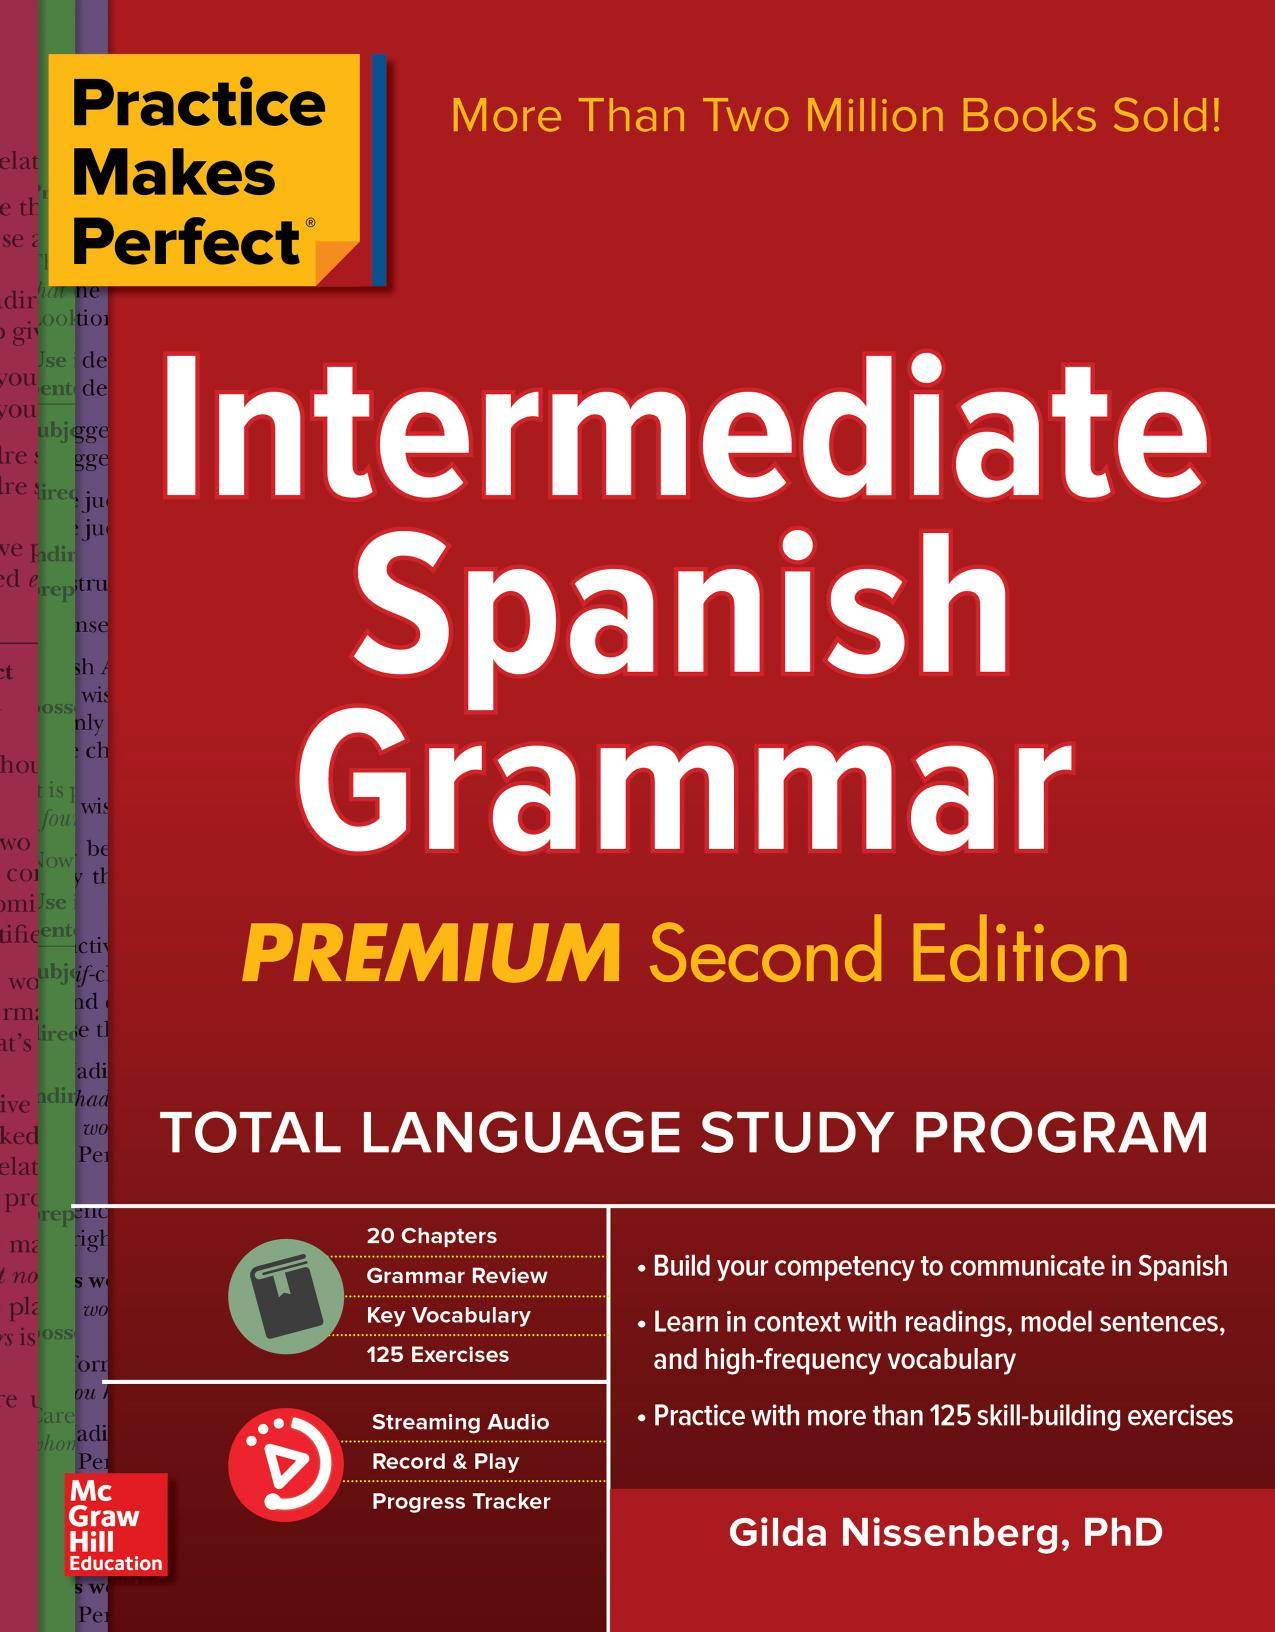 Practice Makes Perfect: Intermediate Spanish Grammar, Premium 2nd Edition